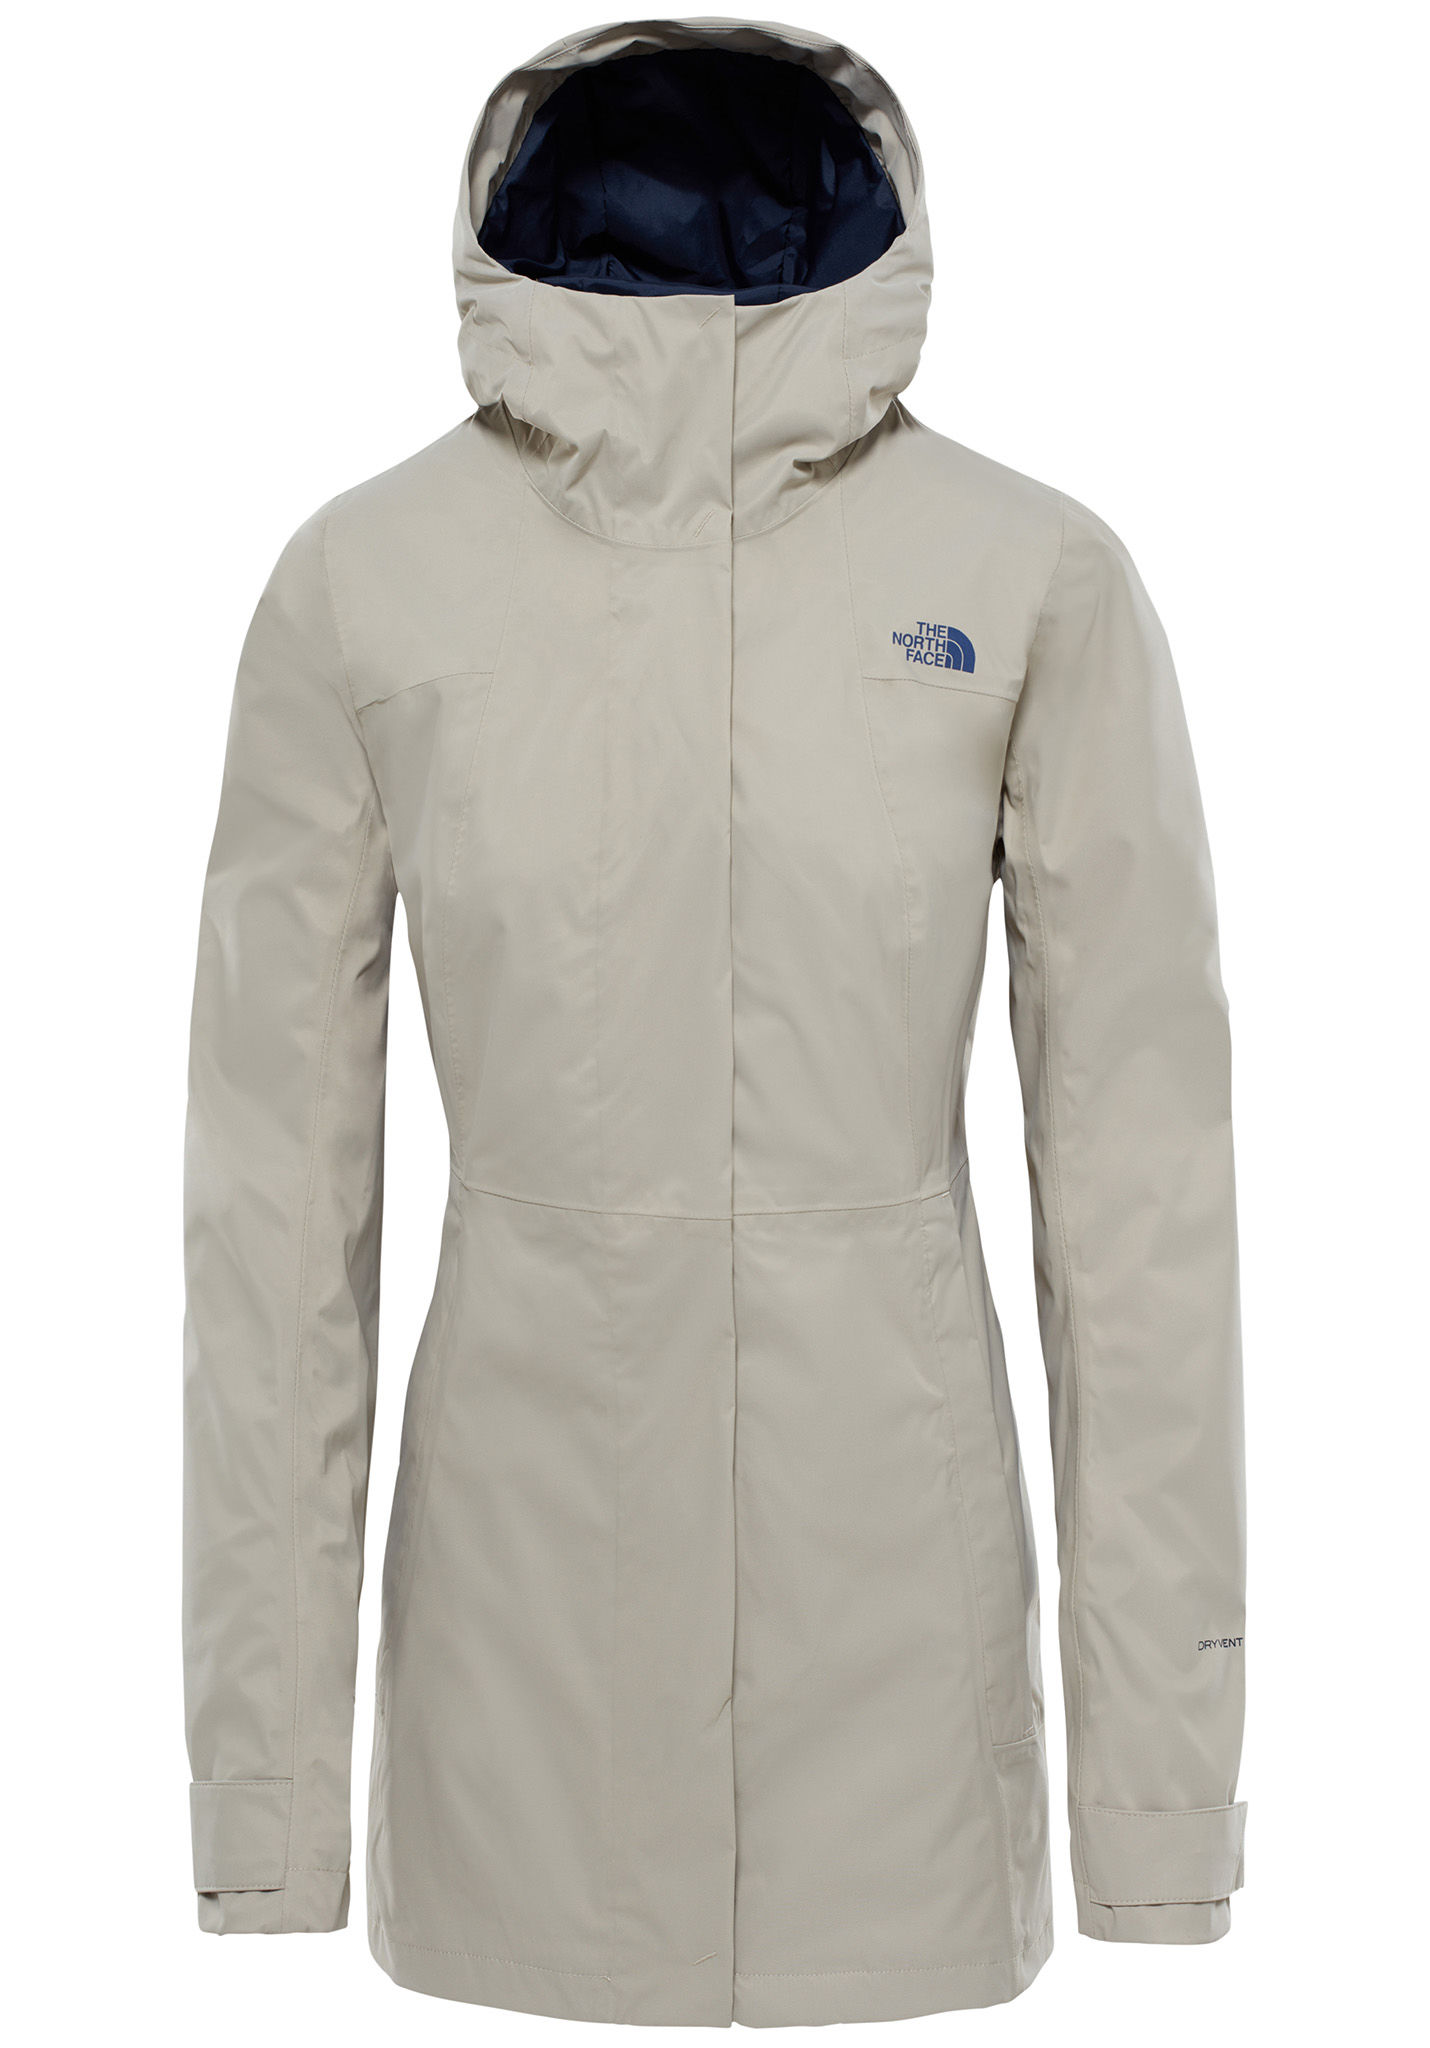 4b7b1f49c THE NORTH FACE City Midi Trench - Coat for Women - Beige